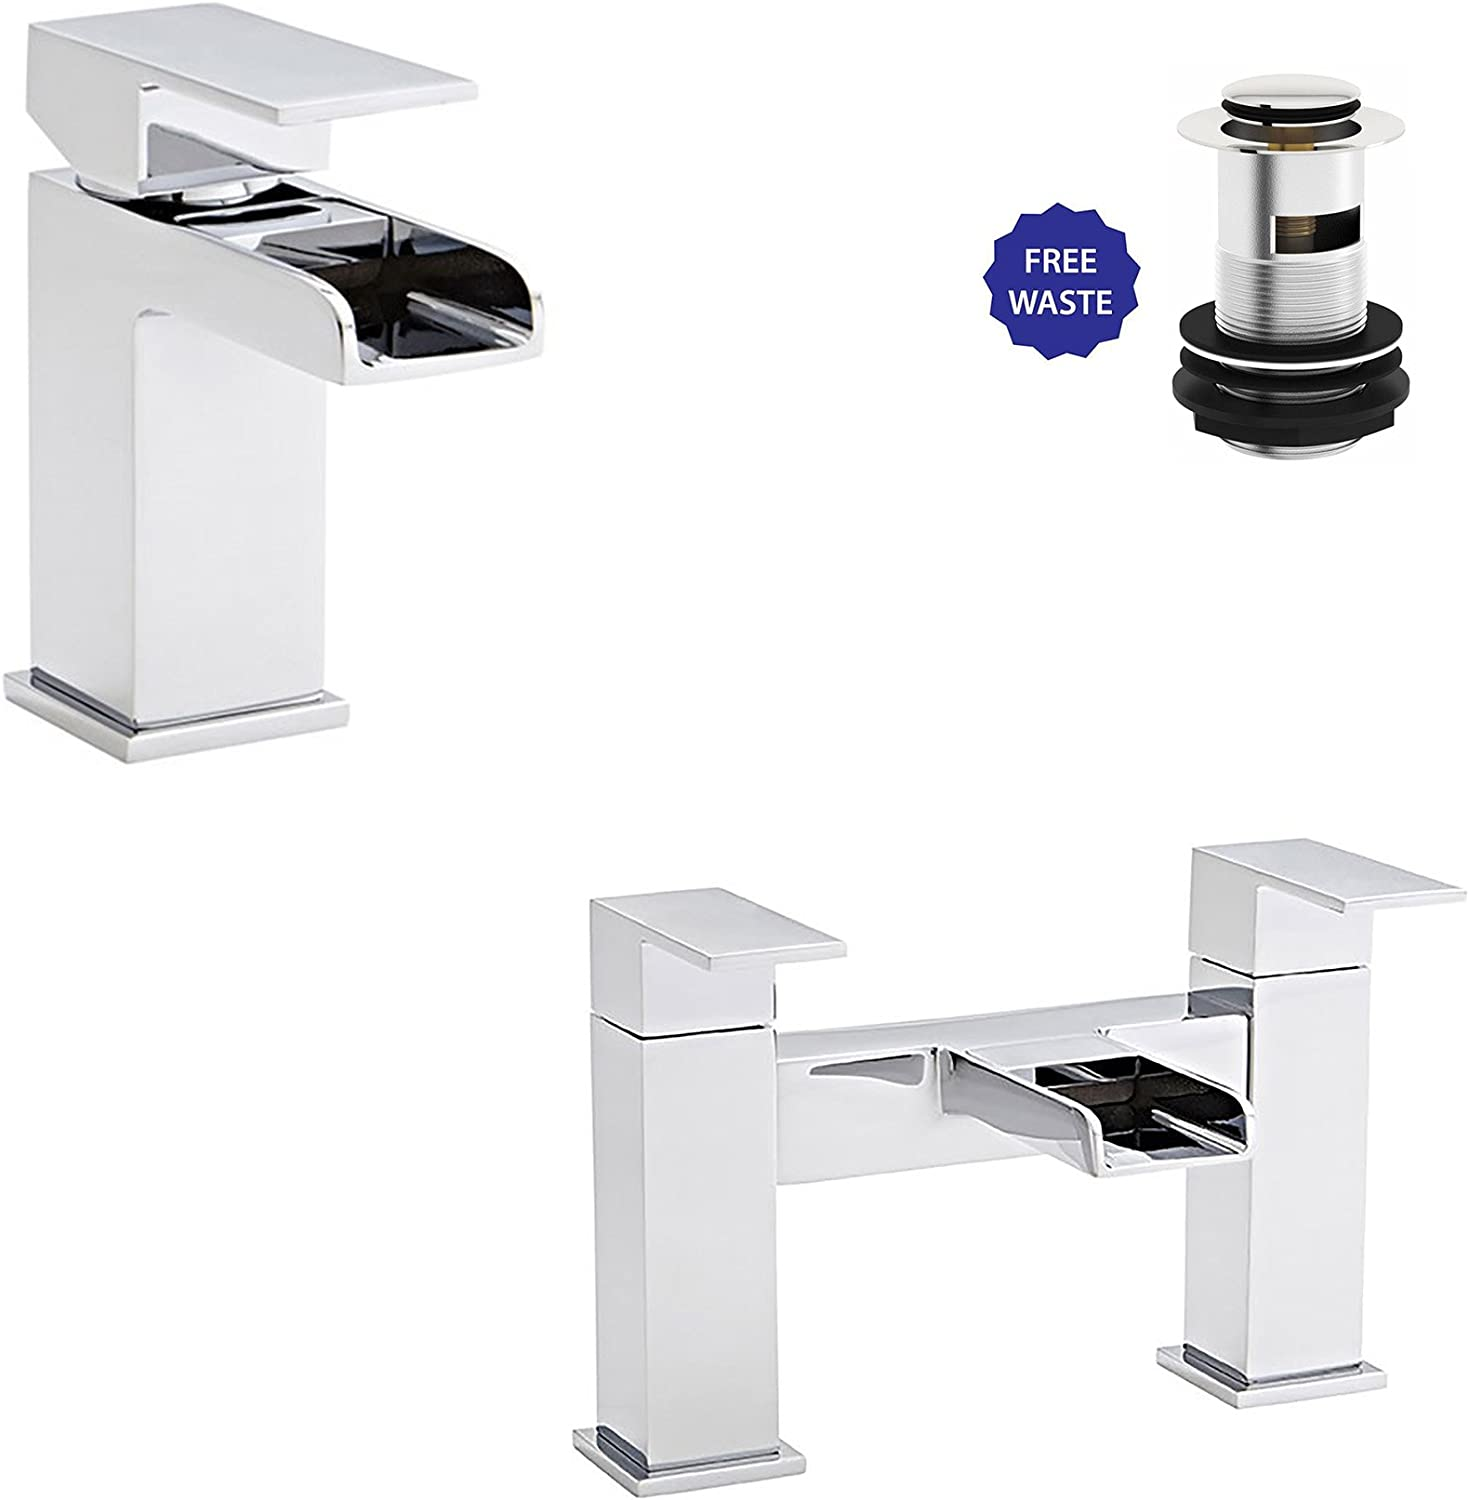 Modern Phase Bath Filler & Mono Basin Mixer Tap + Free Waste Solid Brass Bathroom Set - Chrome Finish